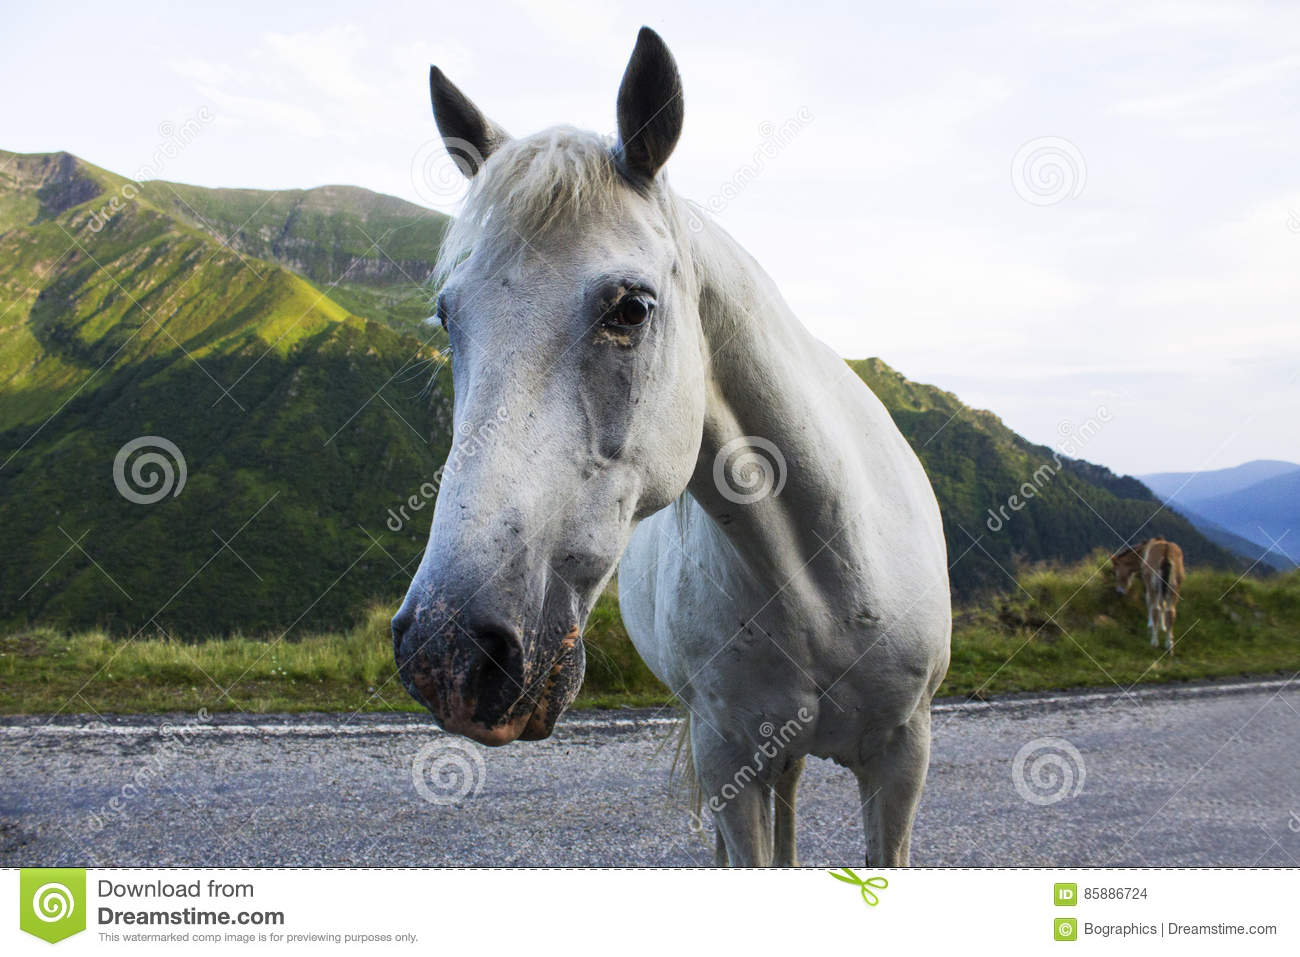 Download Head Of White Horse Looking At Camera On Road Stock Photo - Image of carpathian, look: 85886724